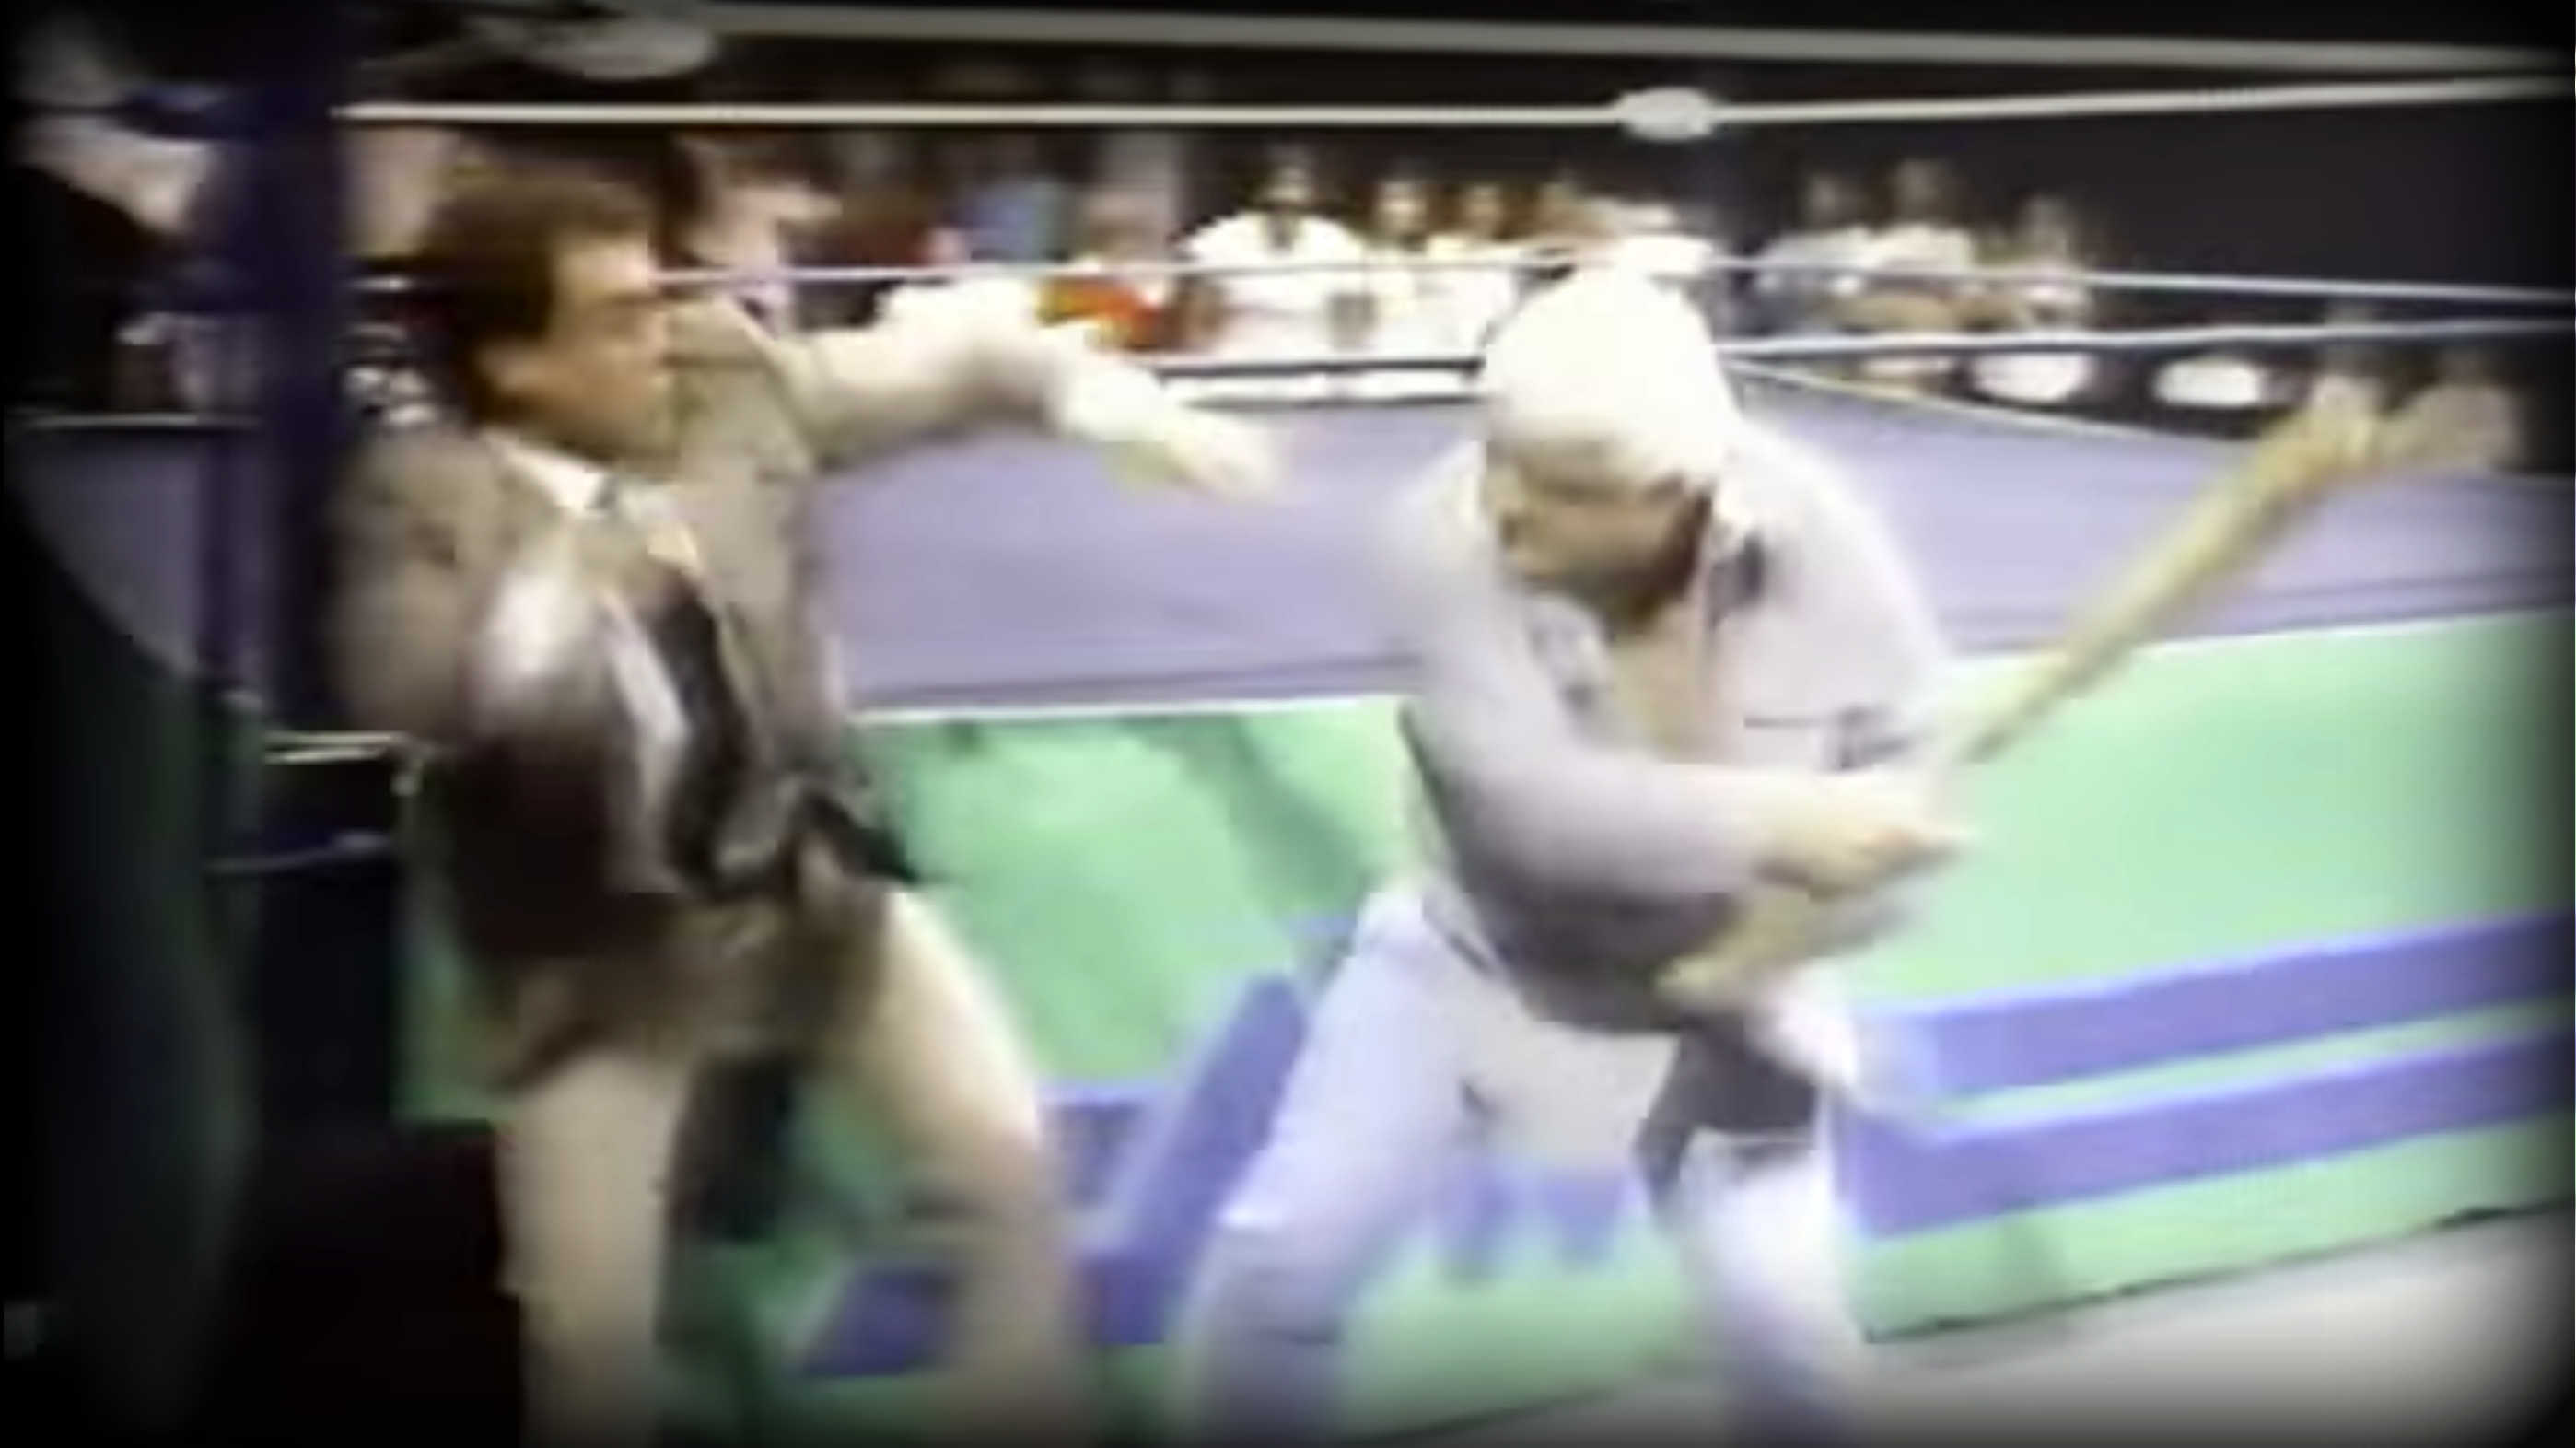 Magnum TA had just come back from a near-fatal car accident when he made some comments about Tully Blanchard. Blanchard came out and sucker punched Magnum, which caused Dusty Rhodes to come out with a baseball bat and beat Blanchard to near death on live television.